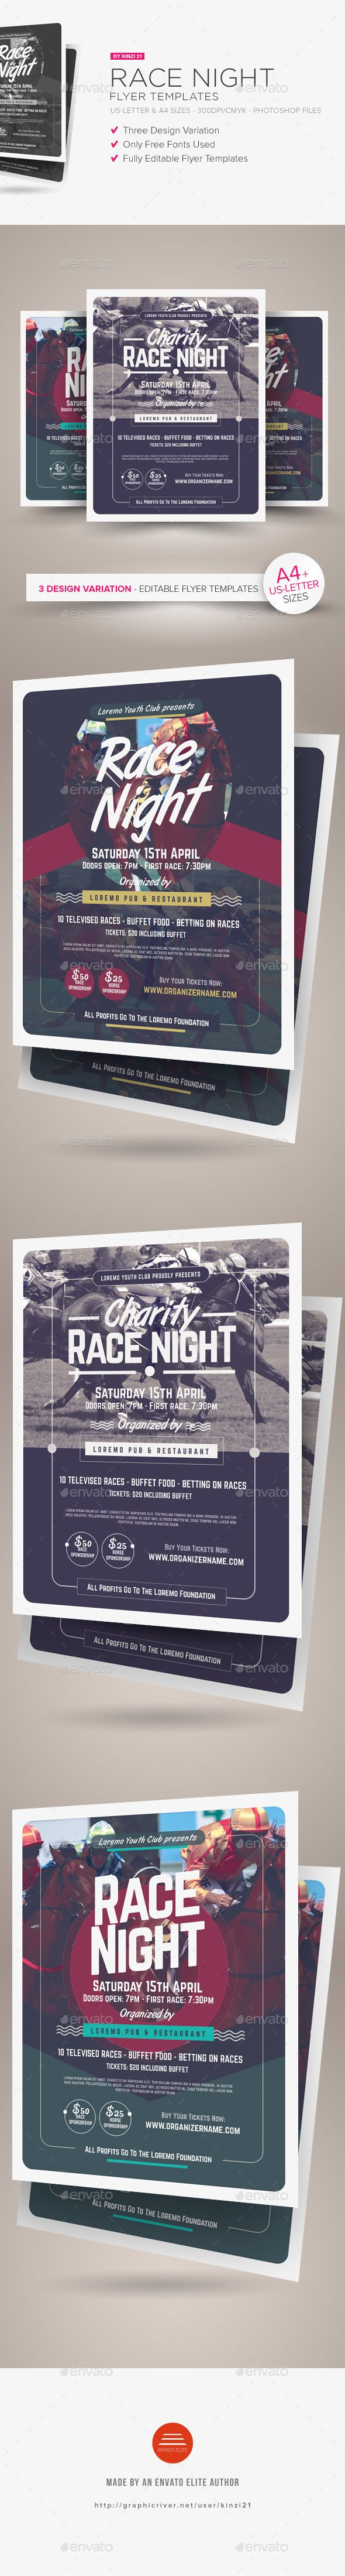 Race Night Flyer Templates Miscellaneous Events Here Https